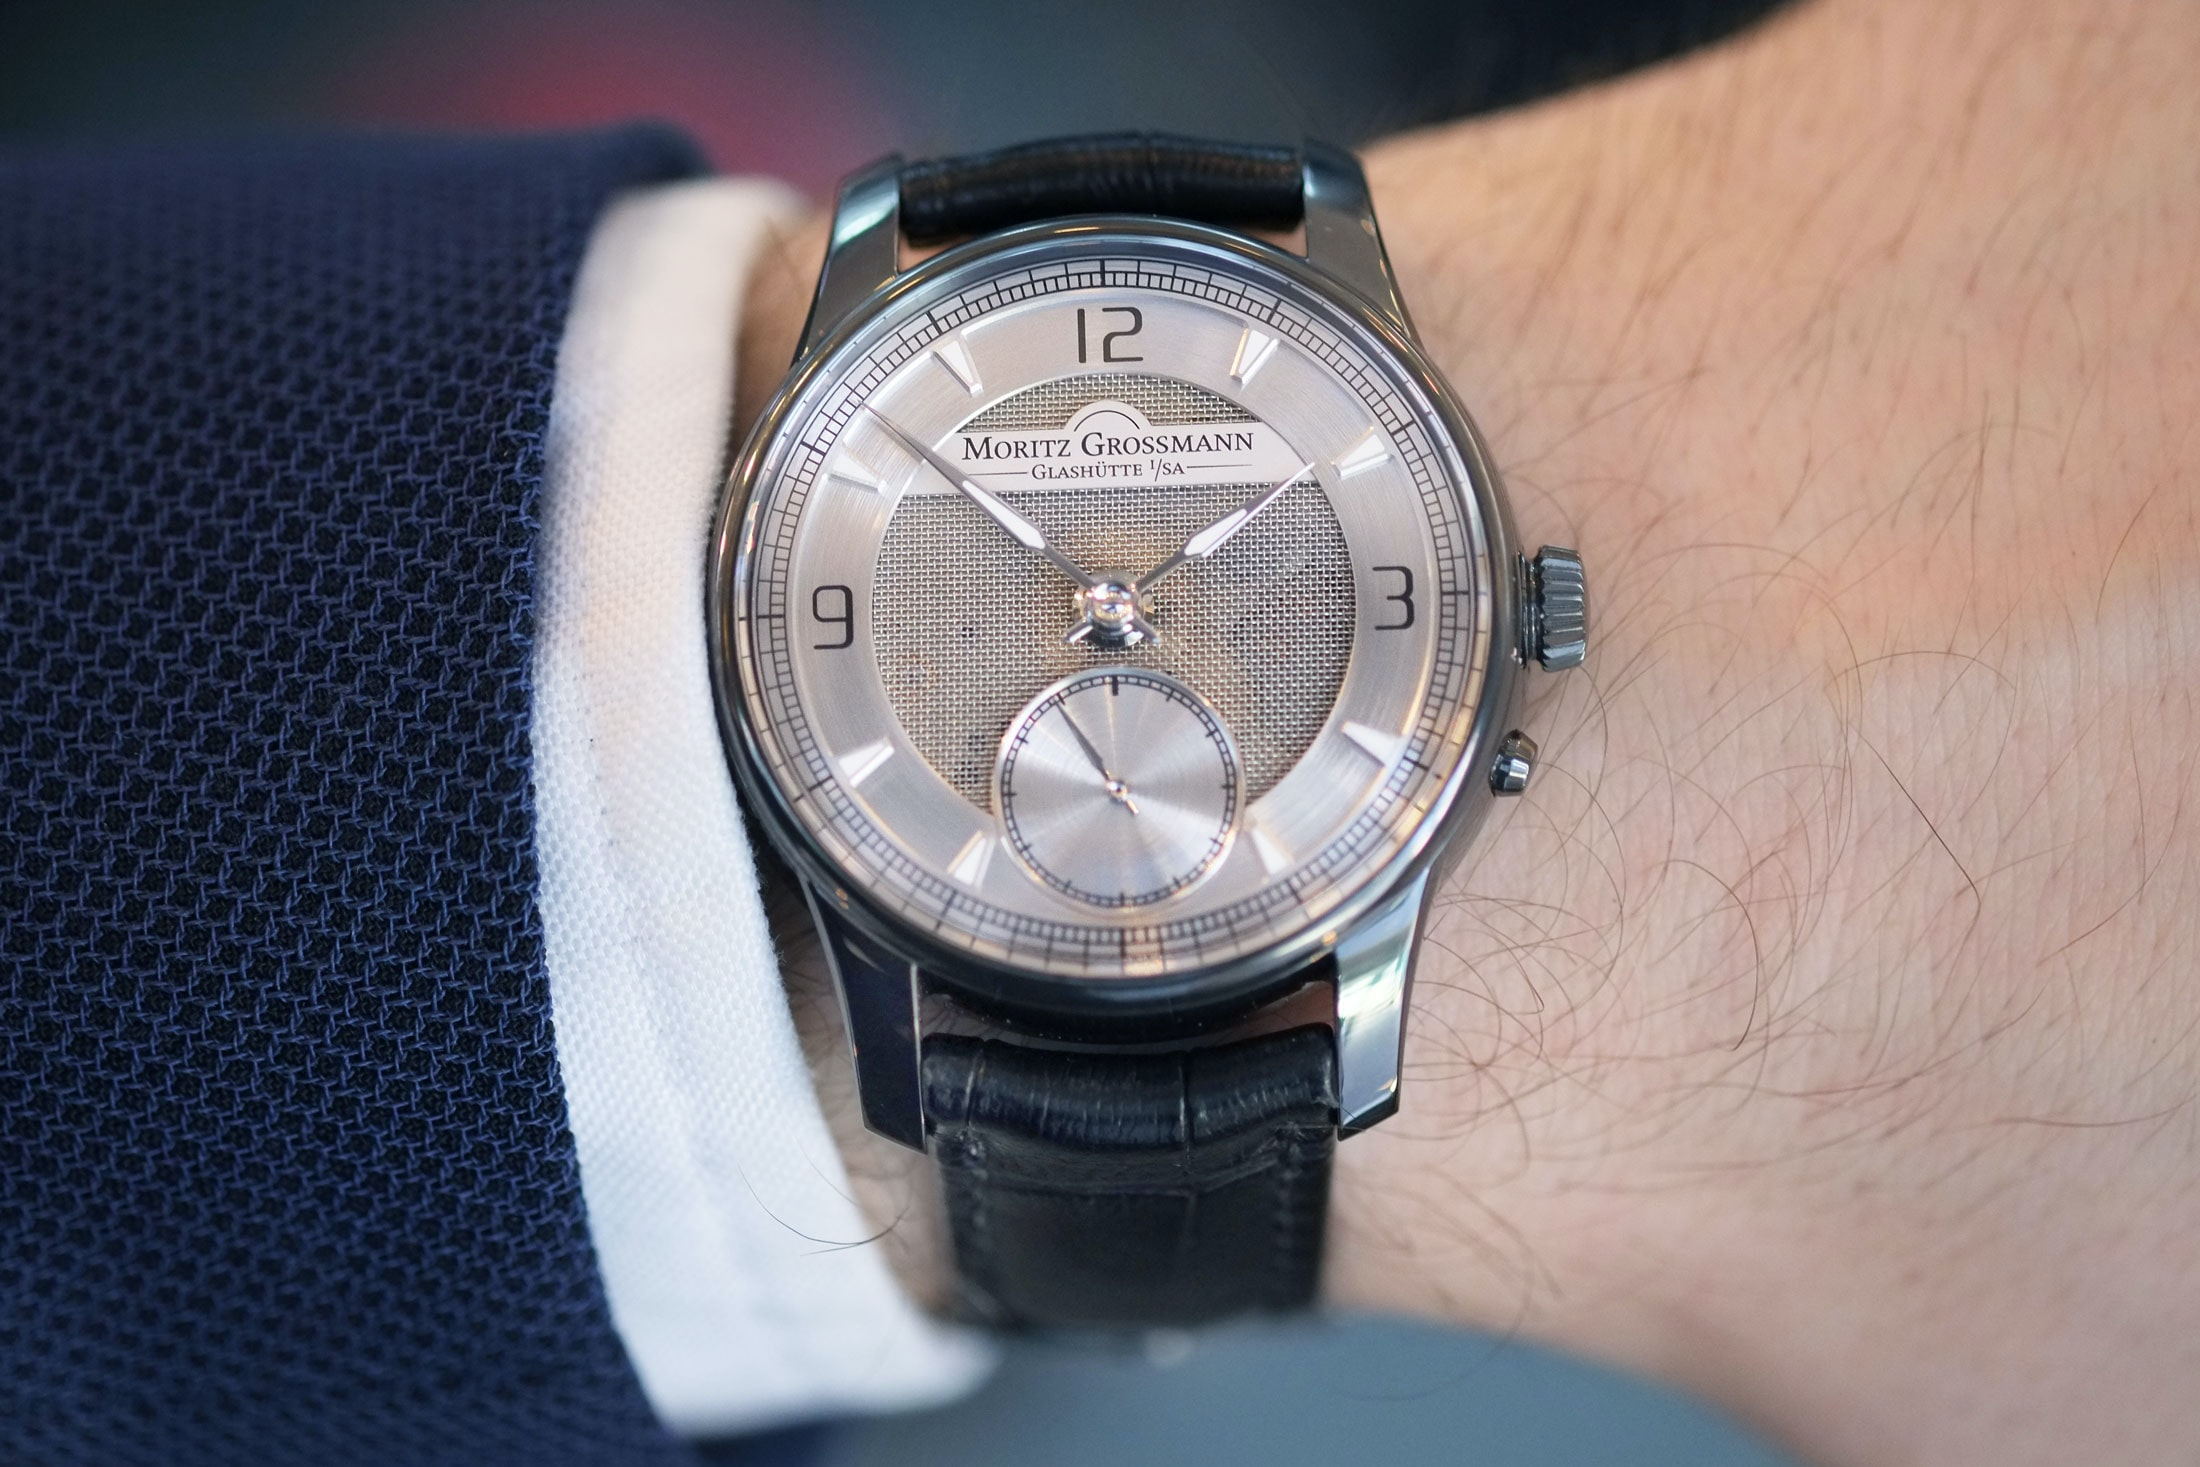 atum pure m moritz grossmann wristshot Hands-On: The Moritz Grossmann Atum Pure M, A Polarizing But Fresh Design From Glashütte Hands-On: The Moritz Grossmann Atum Pure M, A Polarizing But Fresh Design From Glashütte mesh 2